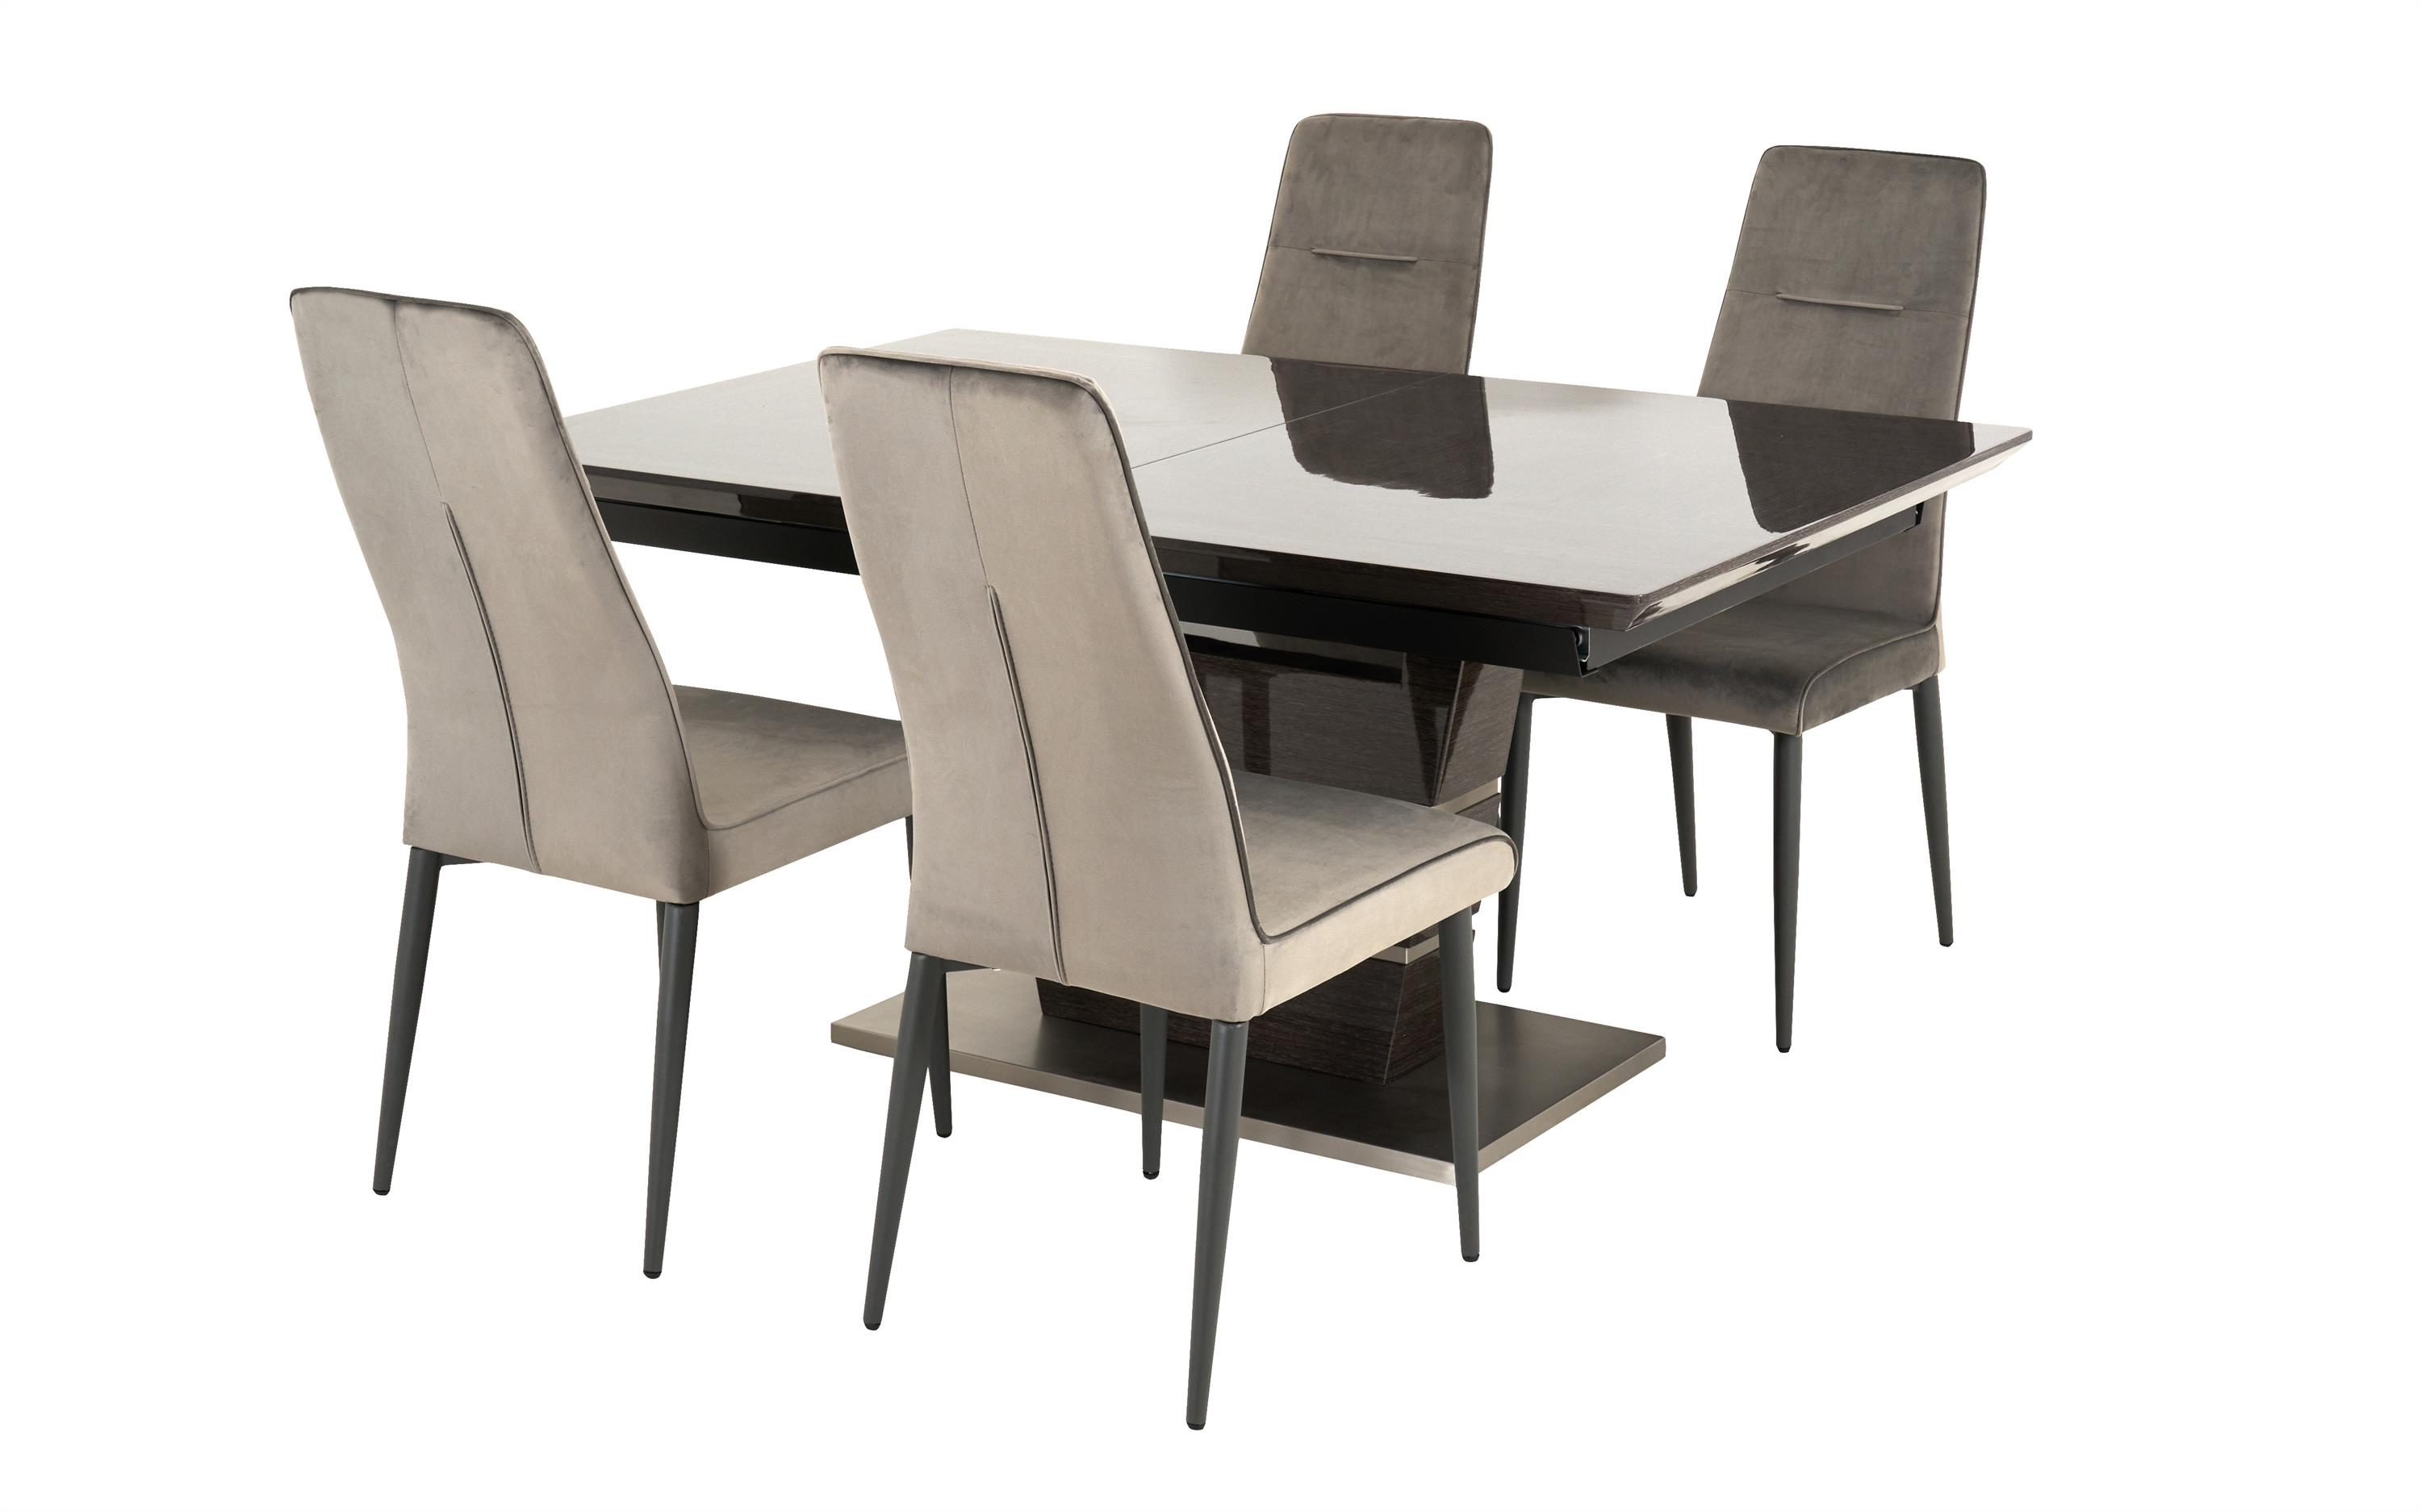 Sisi Italia San Pietro 1.6m Extending Dining Table & 4 Chairs, , large